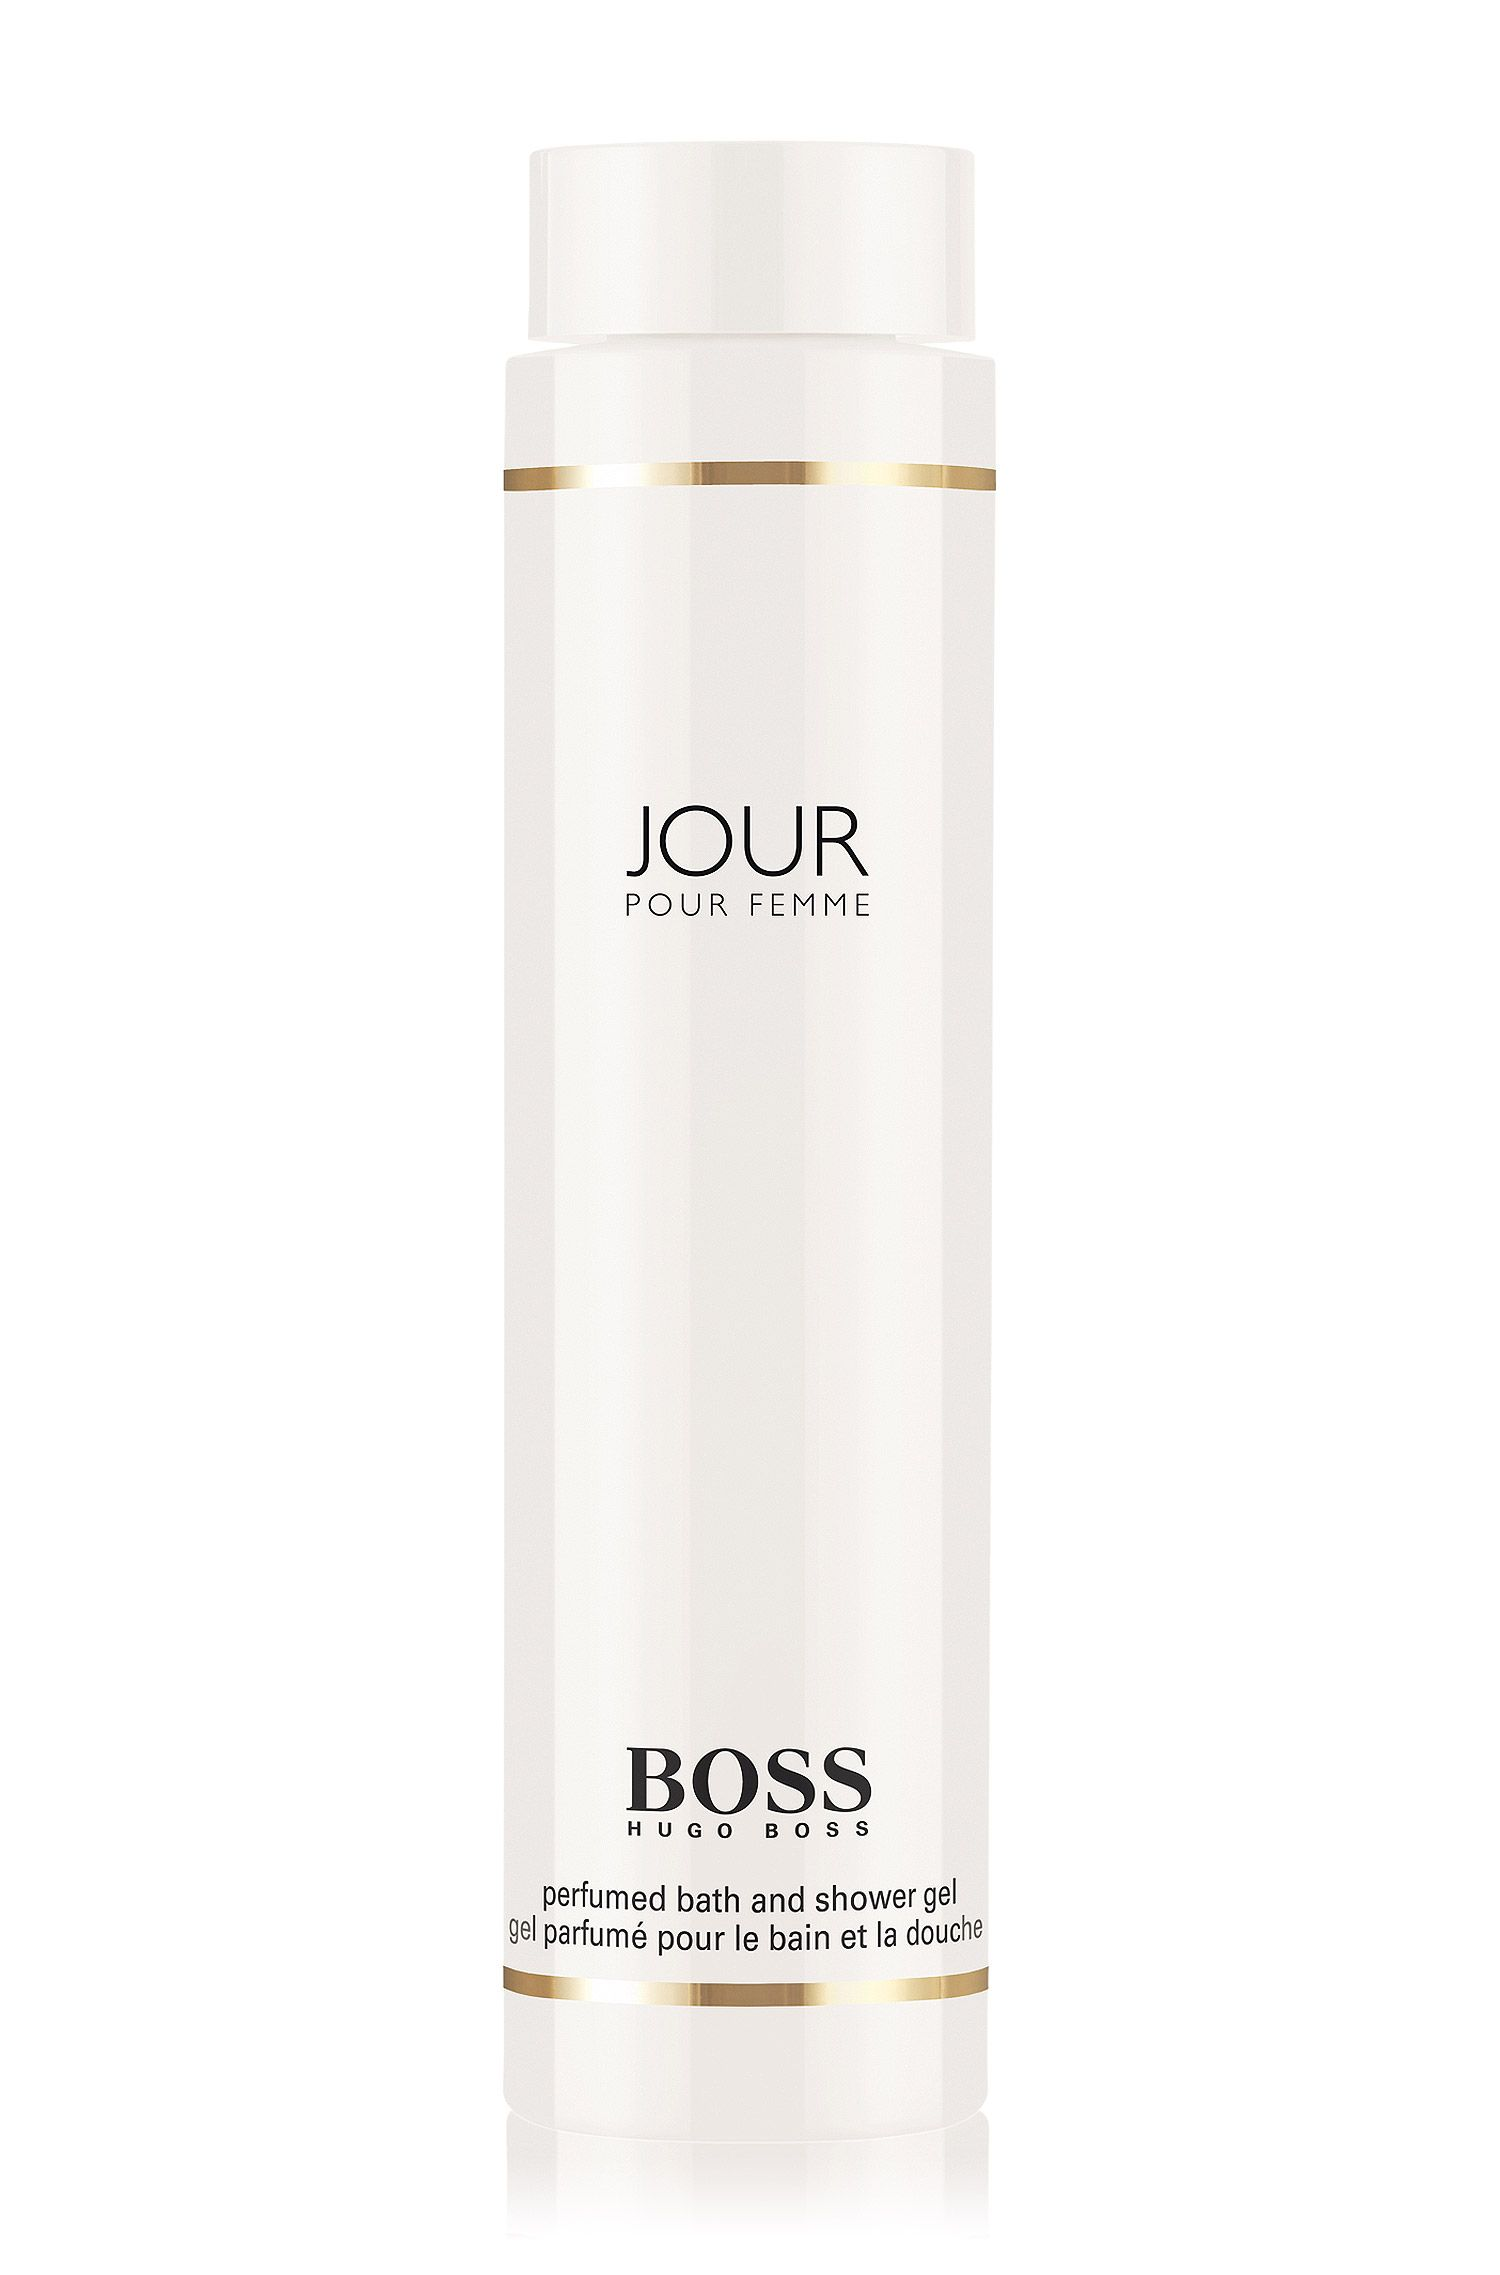 BOSS Jour Showergel 200 ml